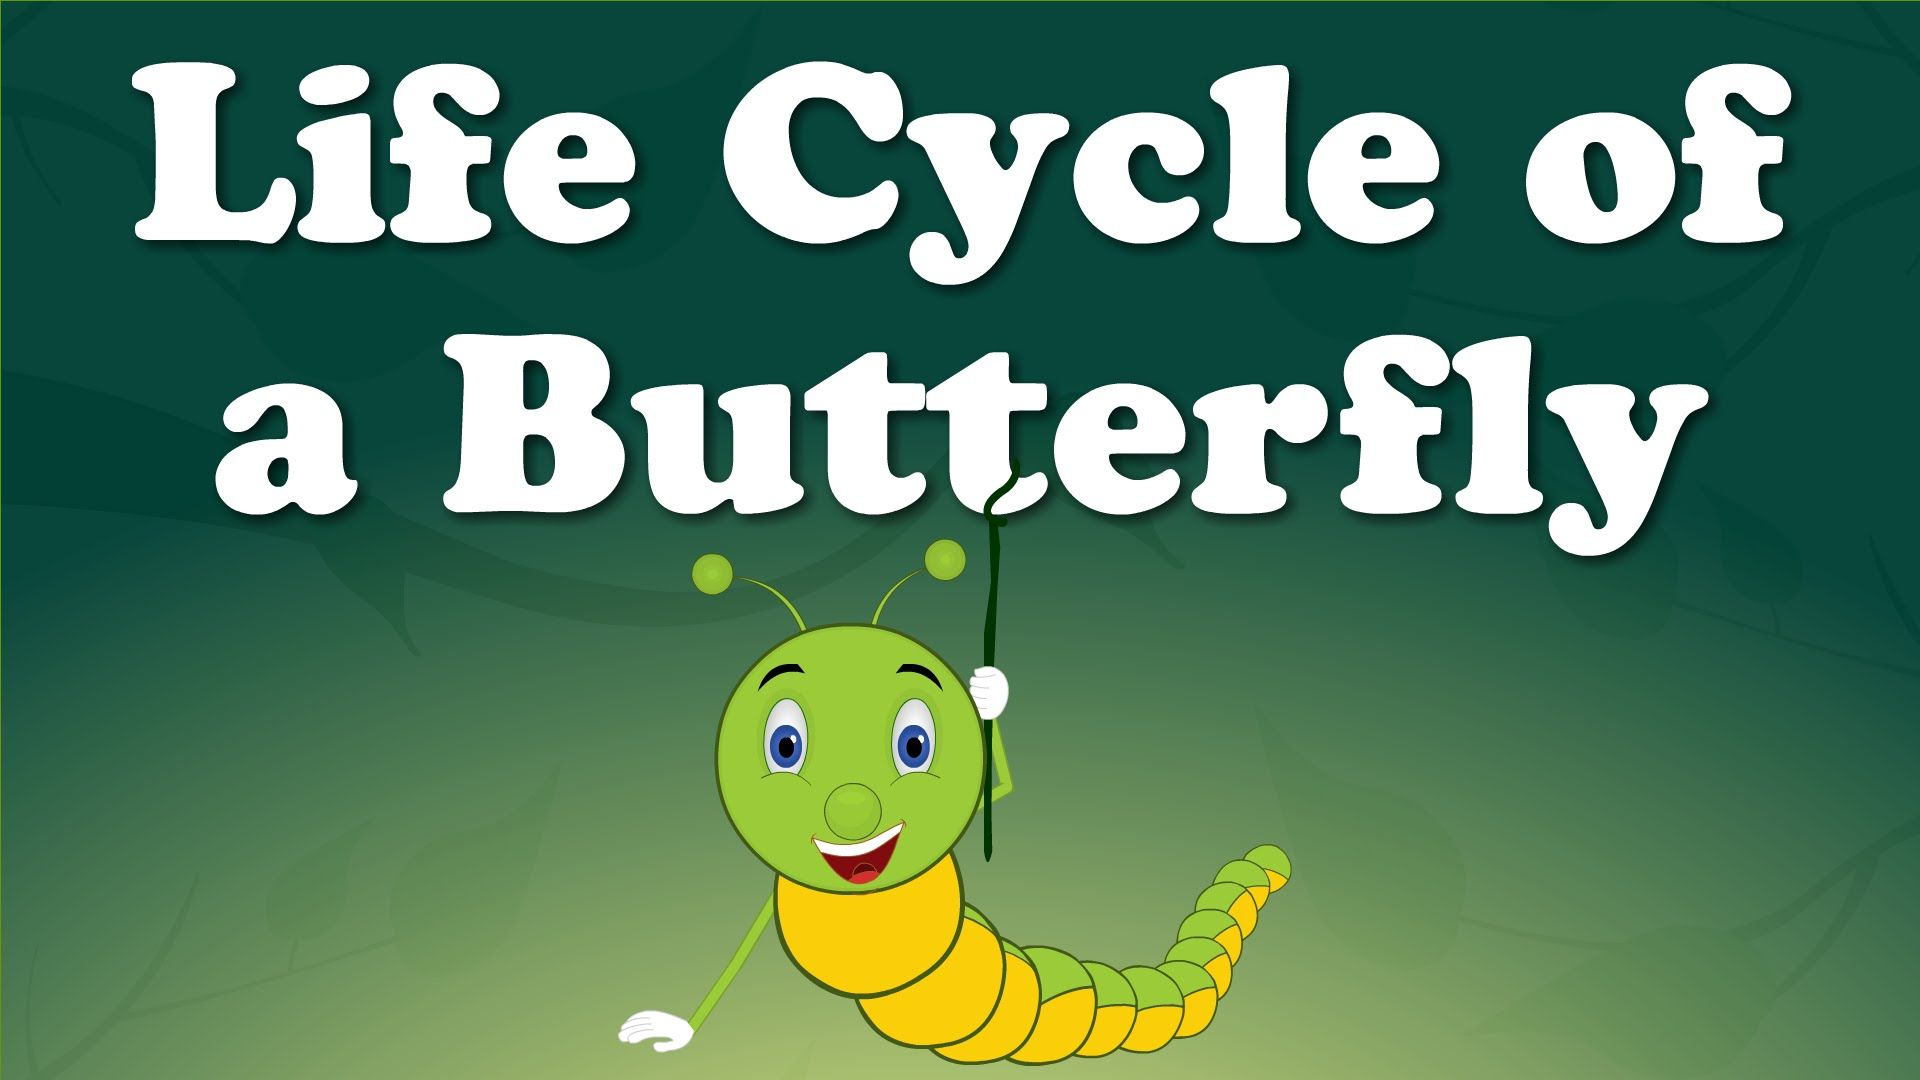 You Will Learn About Life Cycle Of A Butterfly In This